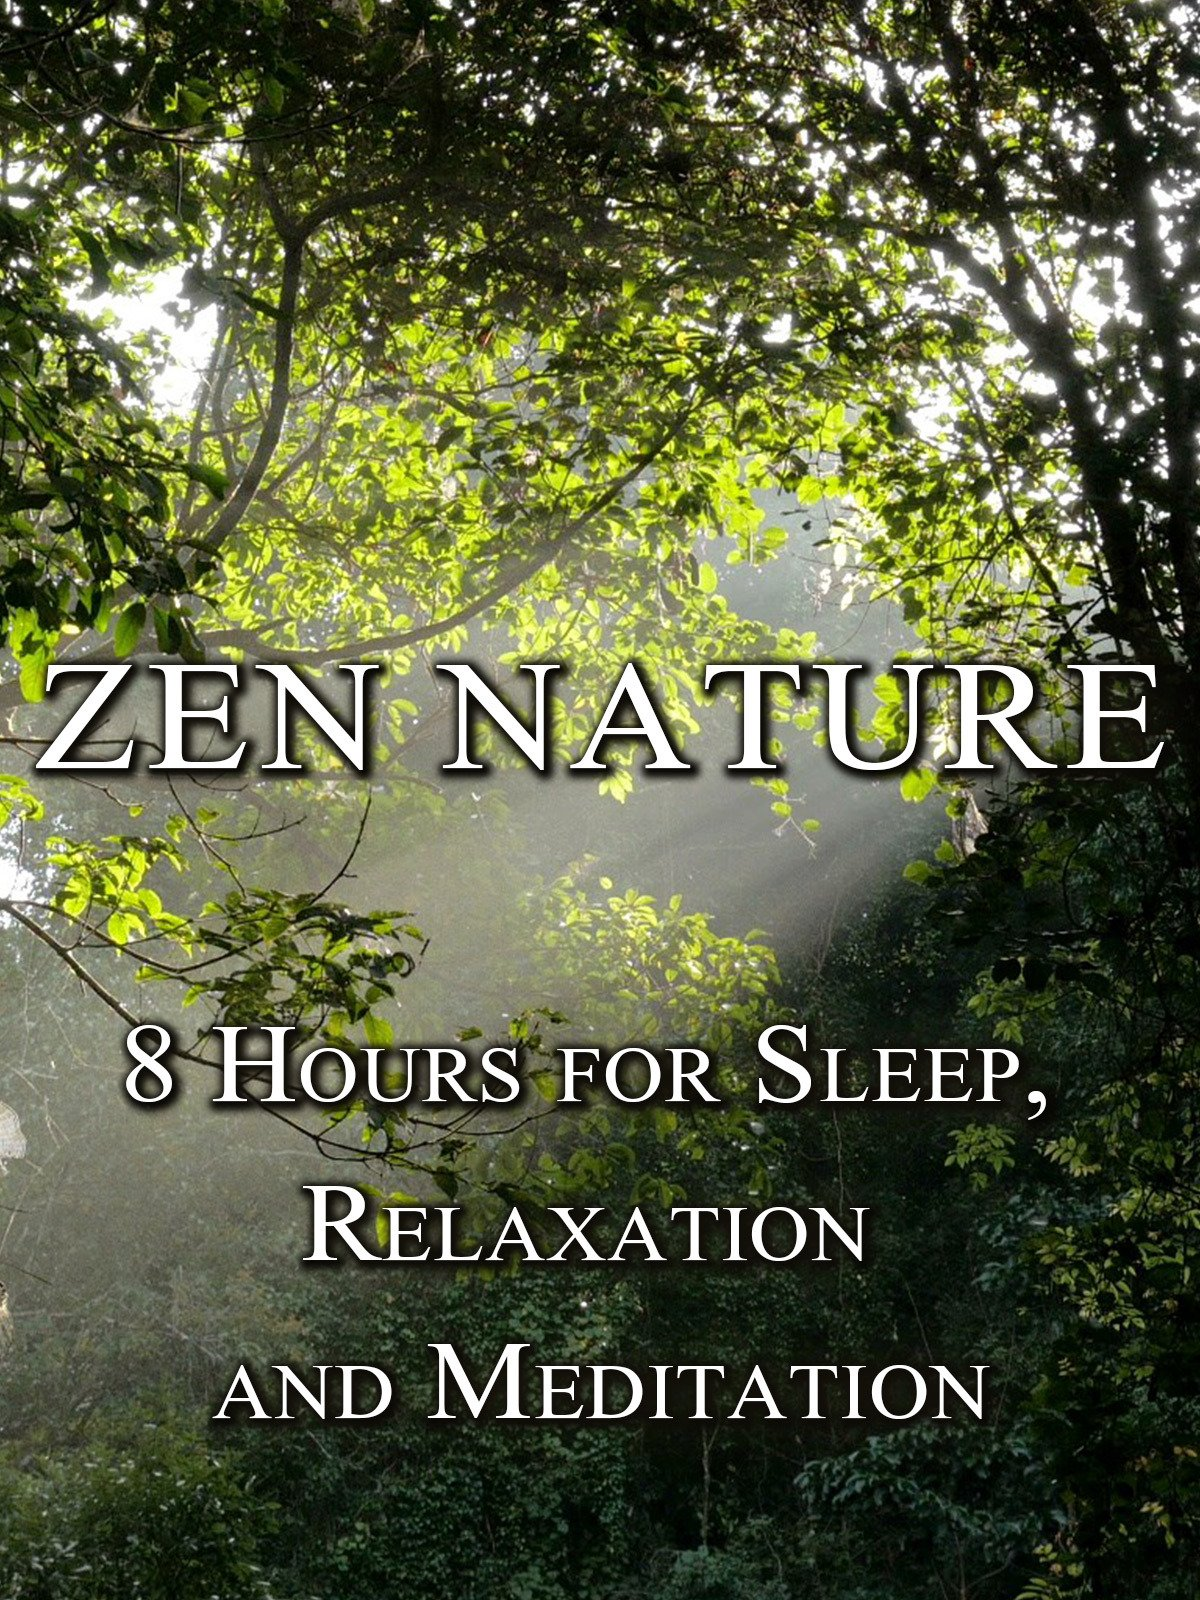 Zen Nature, 8 hours for sleep, relaxation and meditation